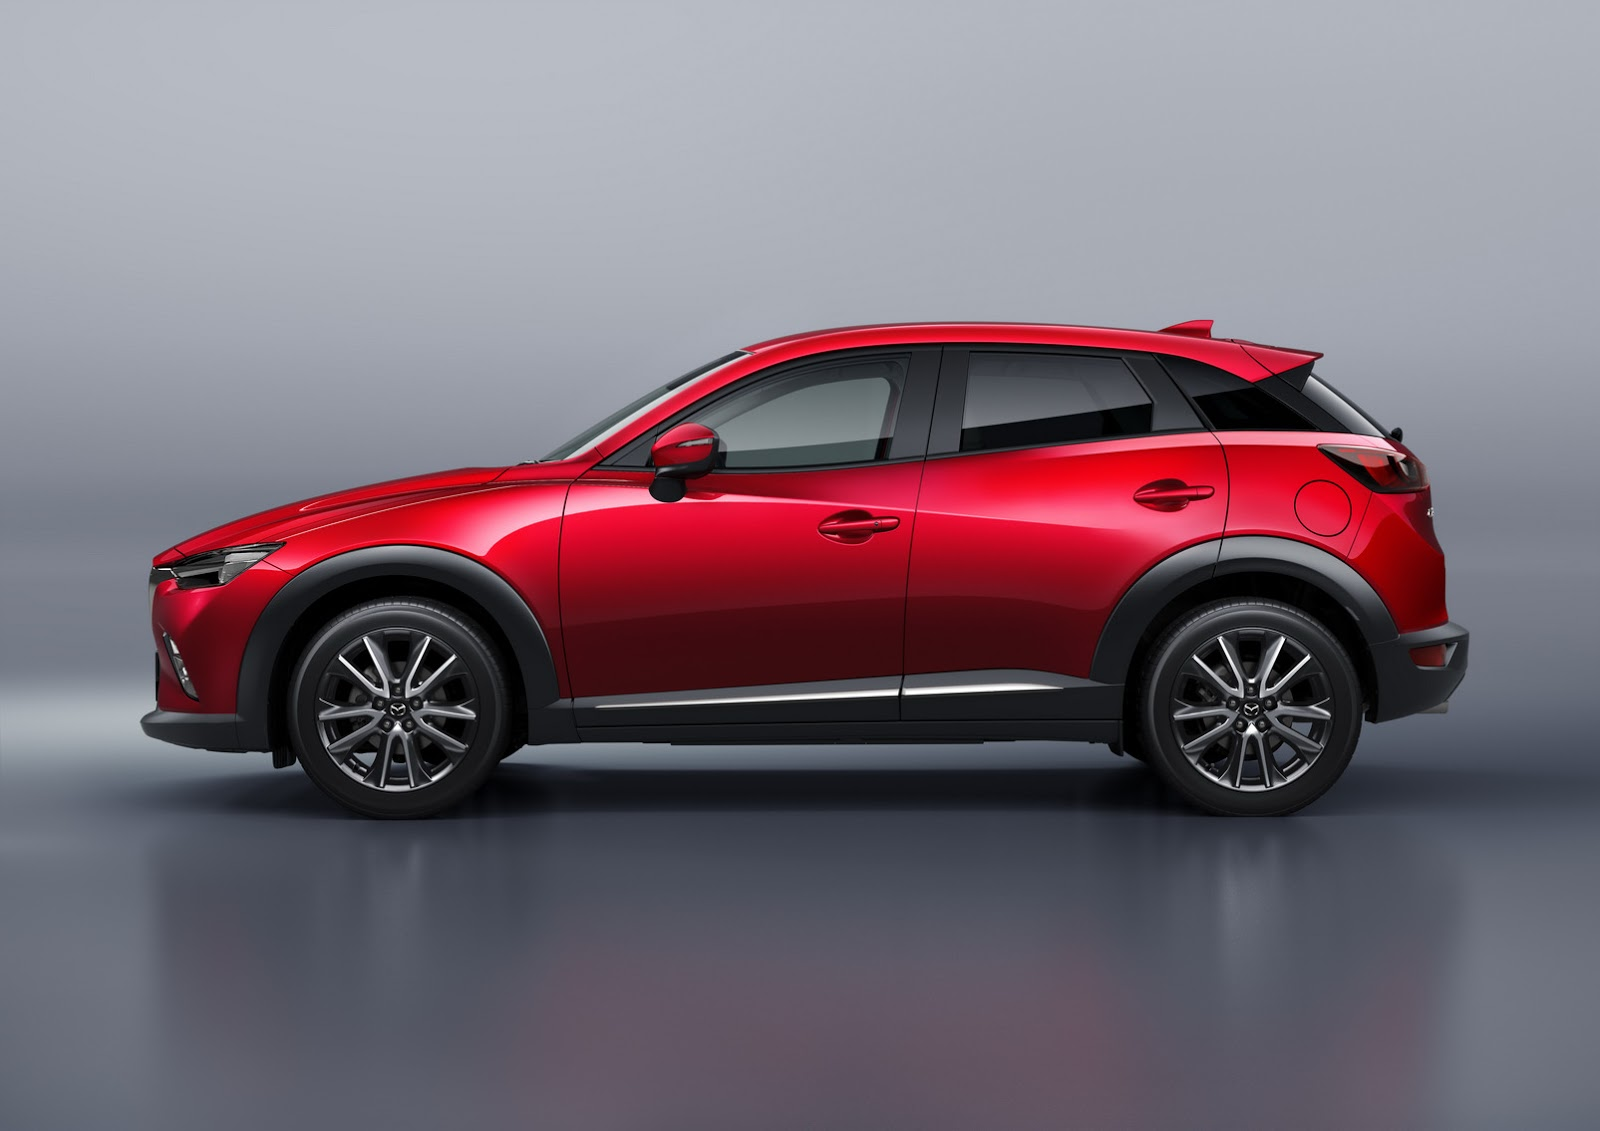 2016 mazda cx 3 is a crispy looking small cuv 50 photos. Black Bedroom Furniture Sets. Home Design Ideas